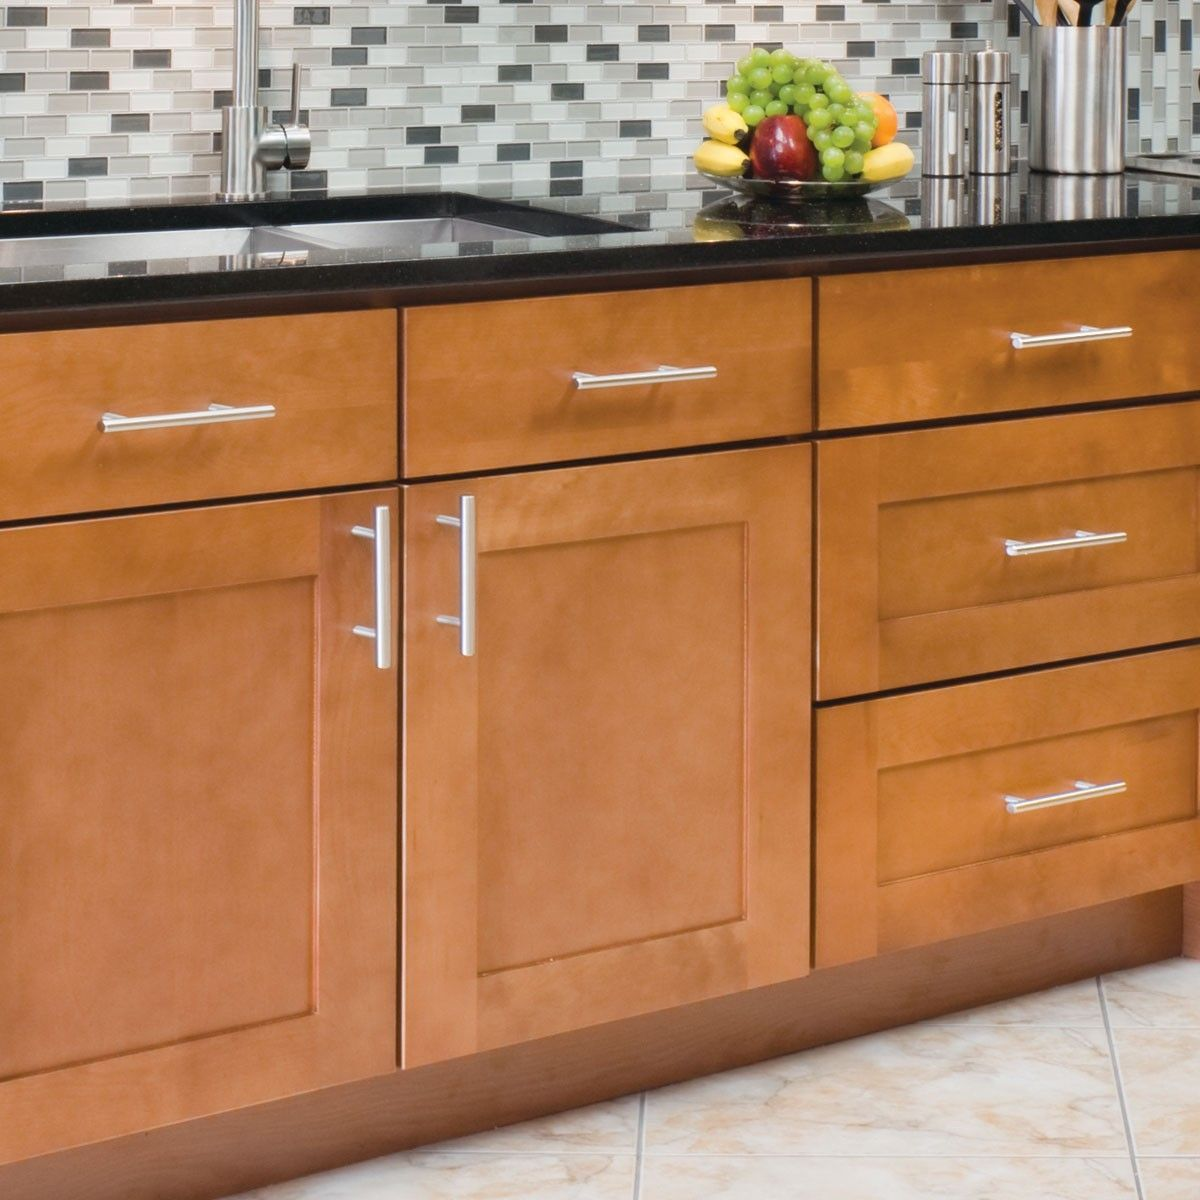 image result for cabinet hardware ideas stainless steel kitchen cabinets steel kitchen on kitchen cabinets knobs id=78474